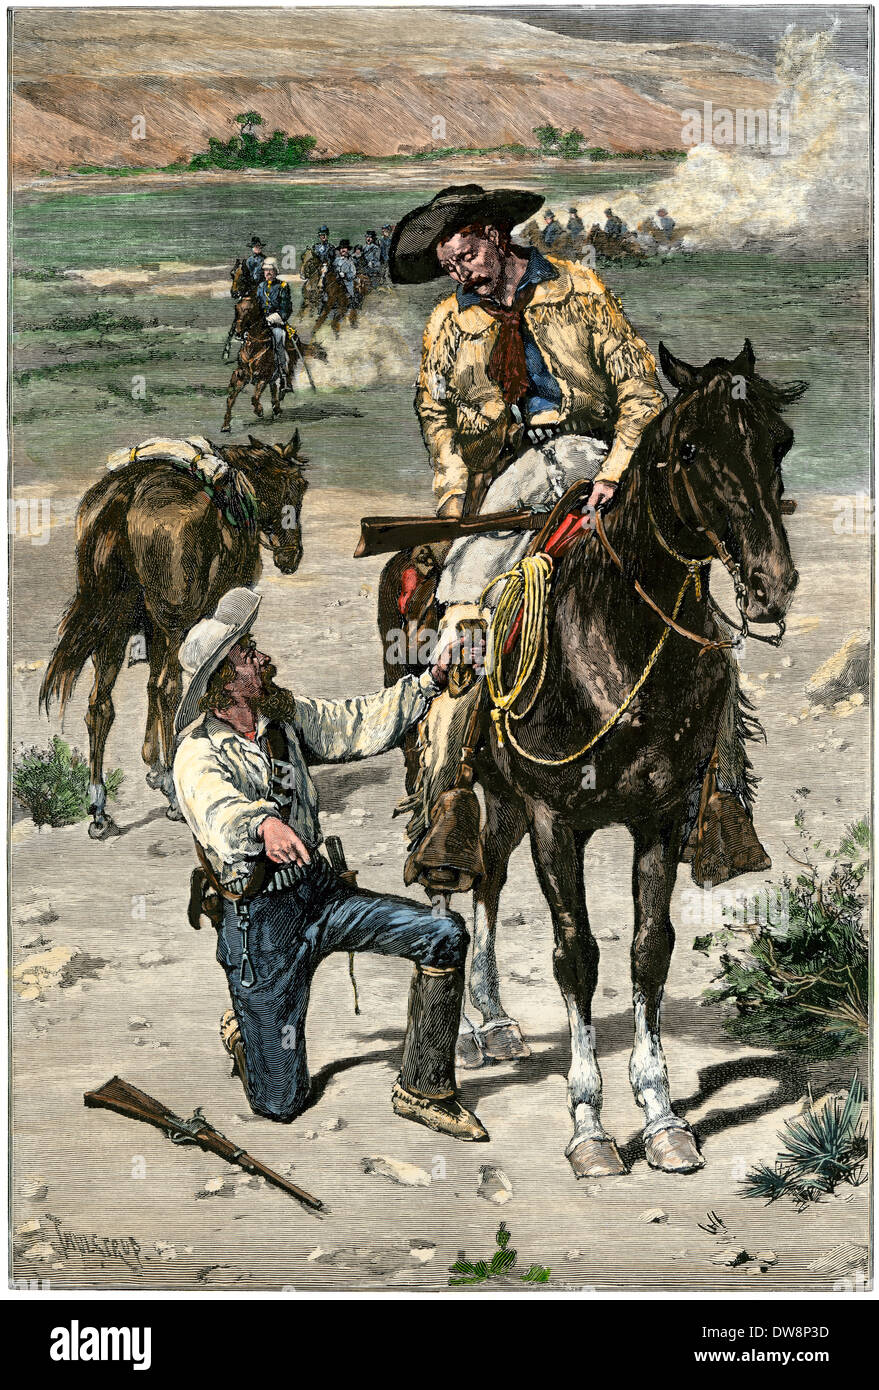 US Army scouts tracking Native American warriors on the western frontier, 1880s. Hand-colored woodcut - Stock Image